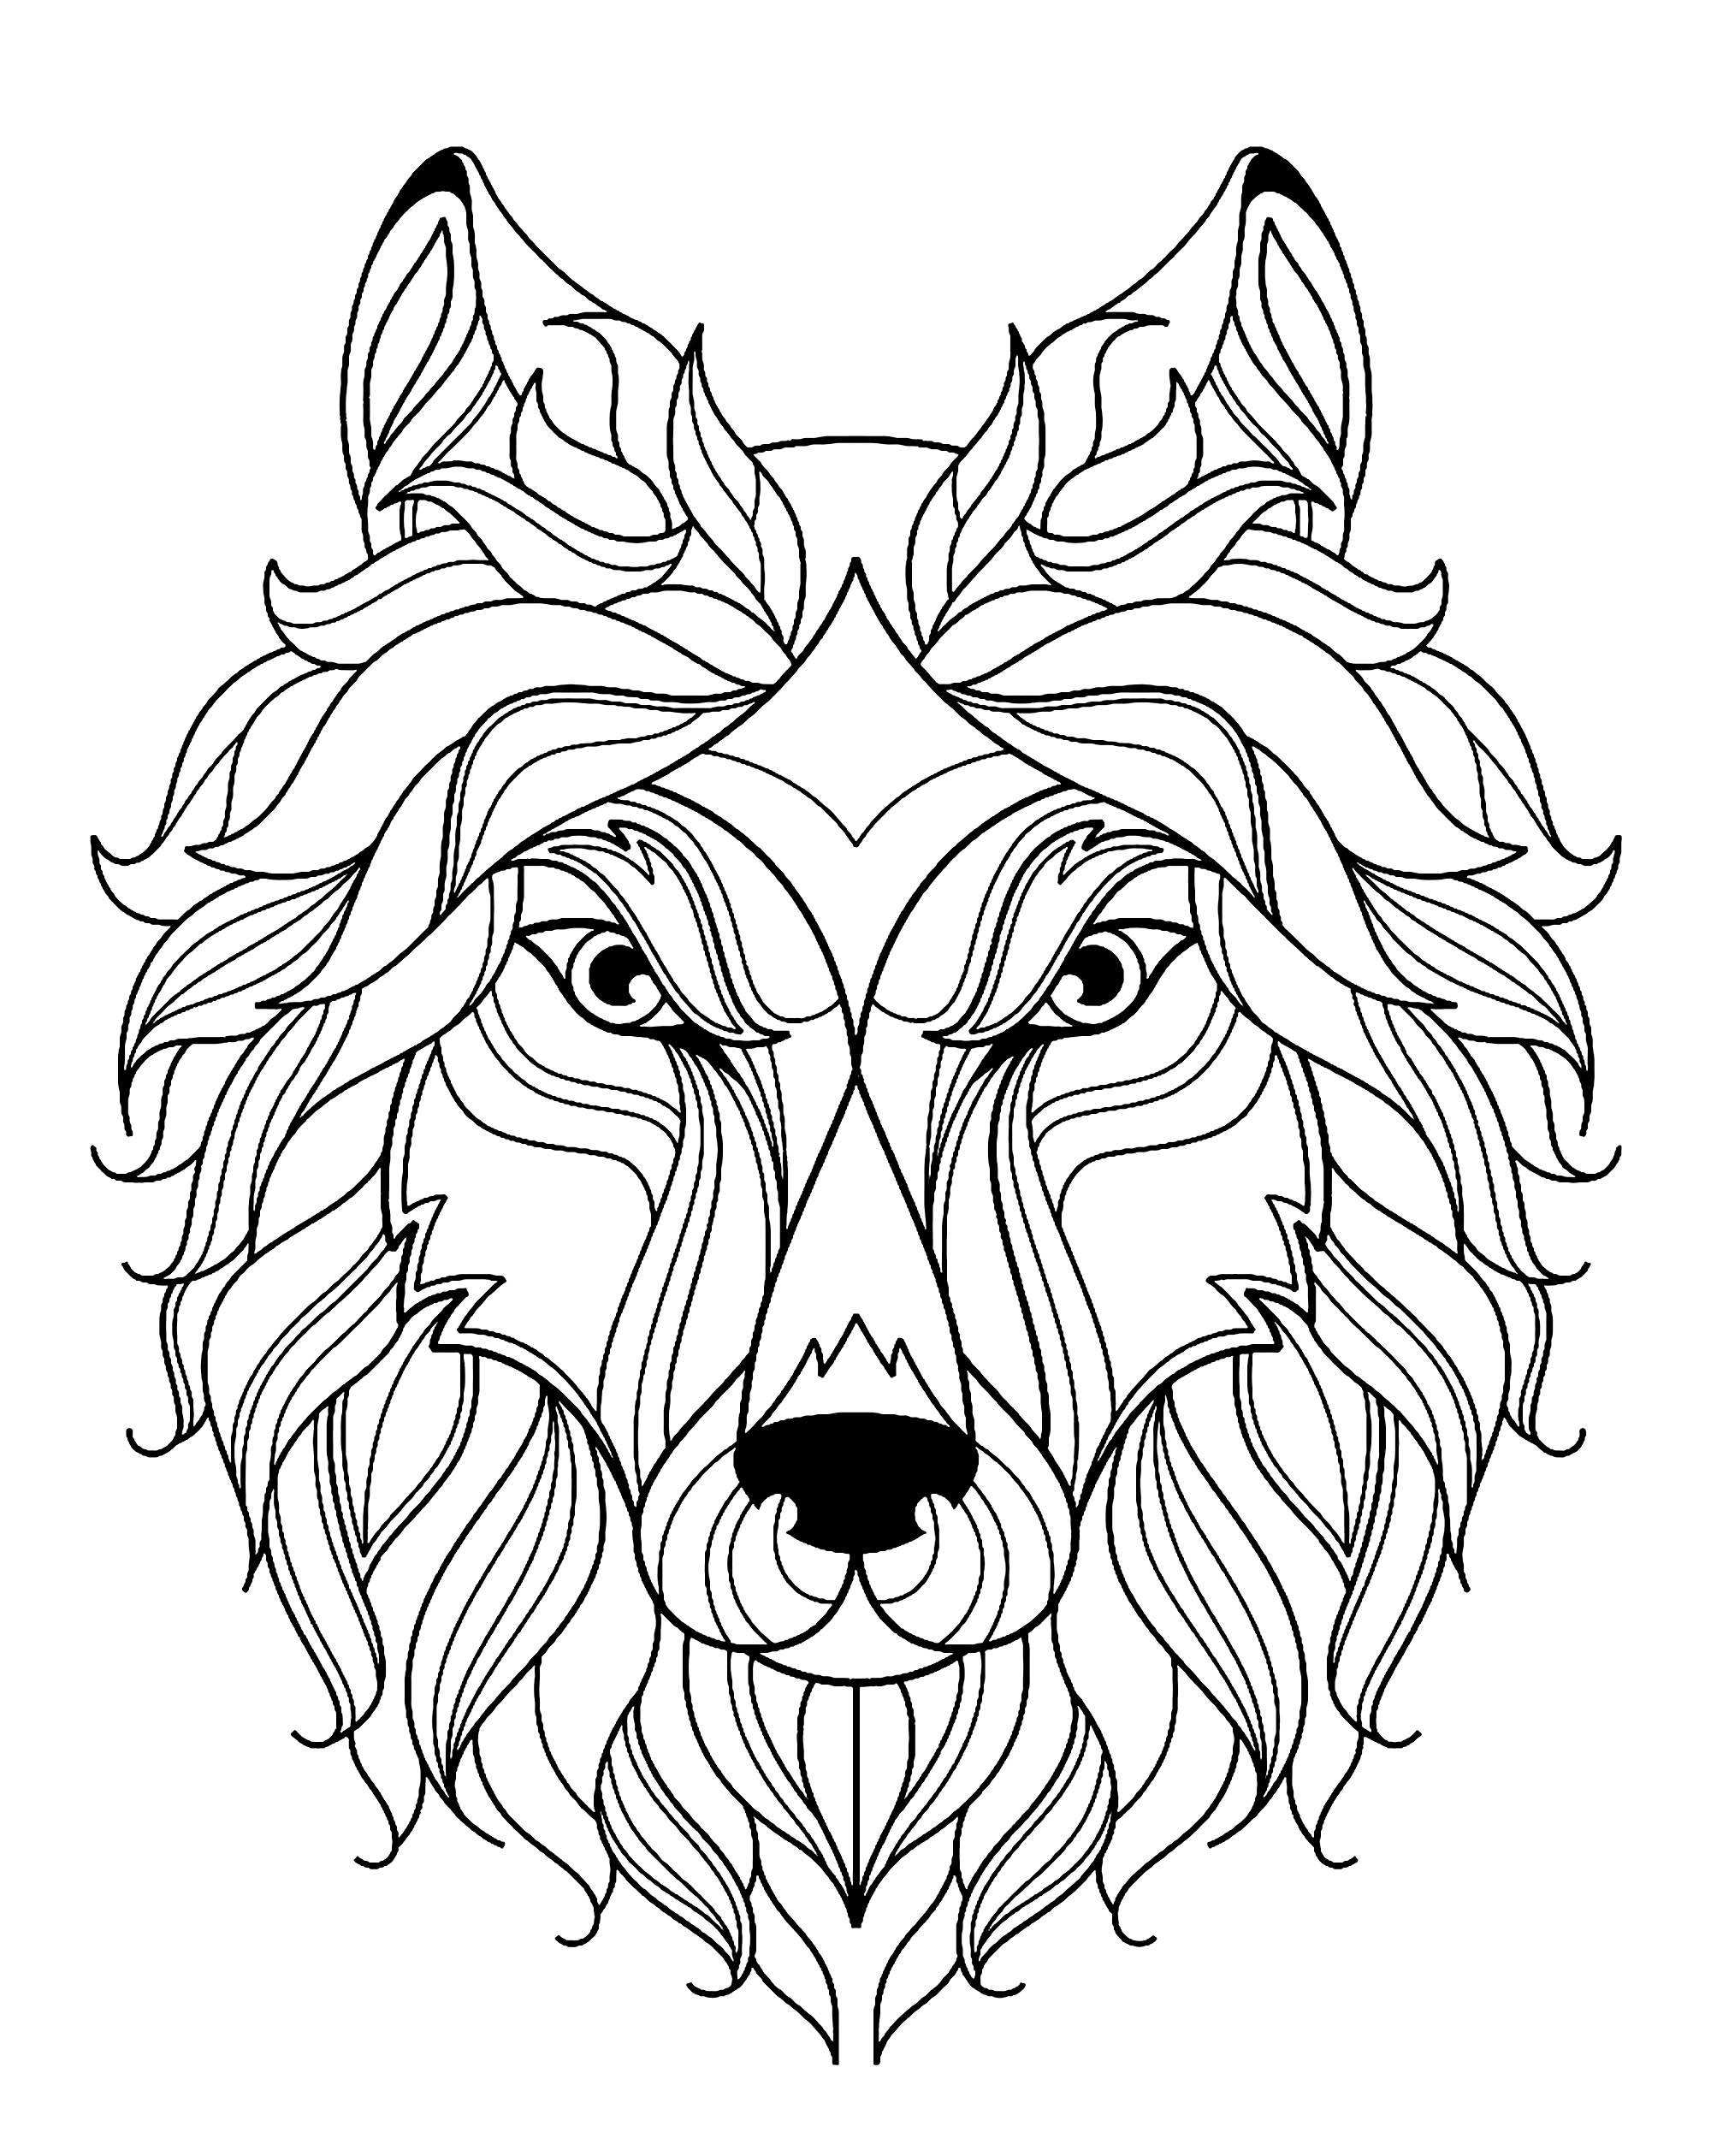 gratuit tete de loup simple coloriage de loups coloriages pour enfants. Black Bedroom Furniture Sets. Home Design Ideas